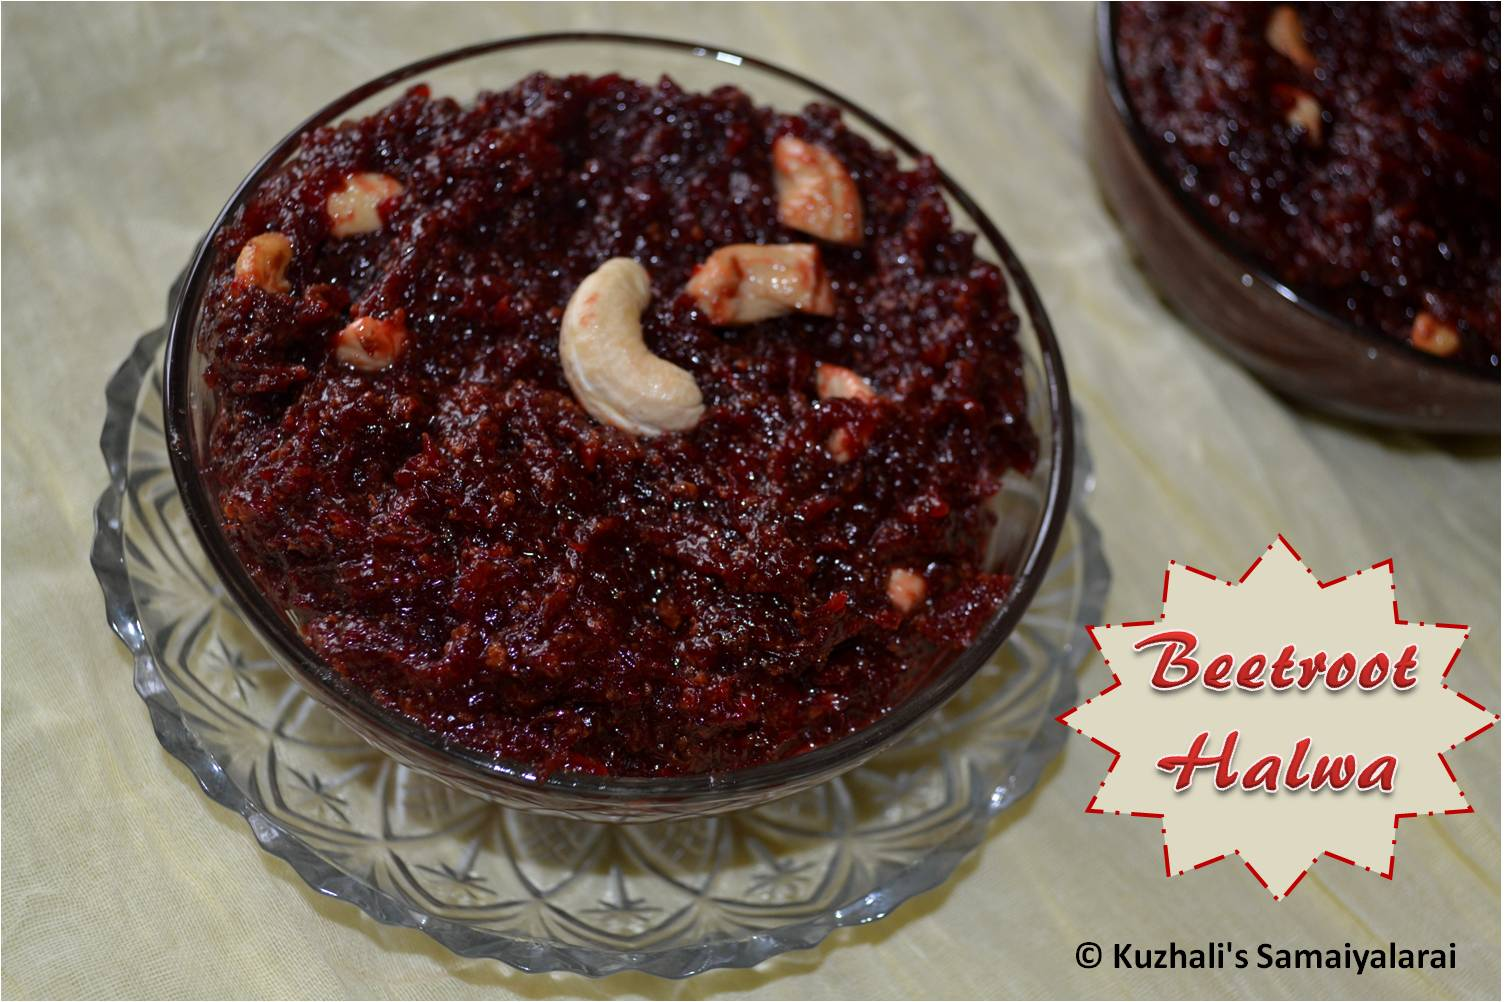 http://www.kuzhalisamaiyalarai.in/2017/06/easy-beetroot-halwa-recipe-how-to-make.html